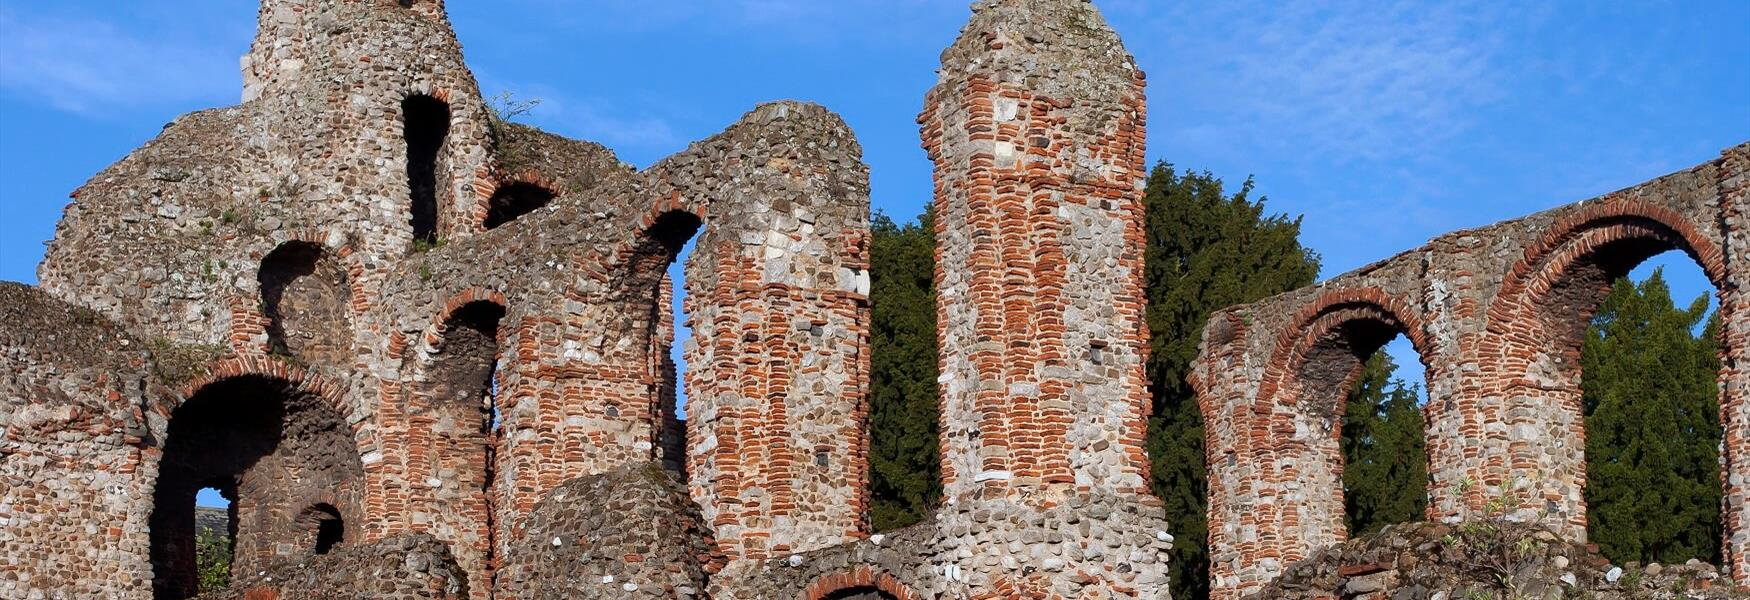 The ruins of St Botolph's Priory